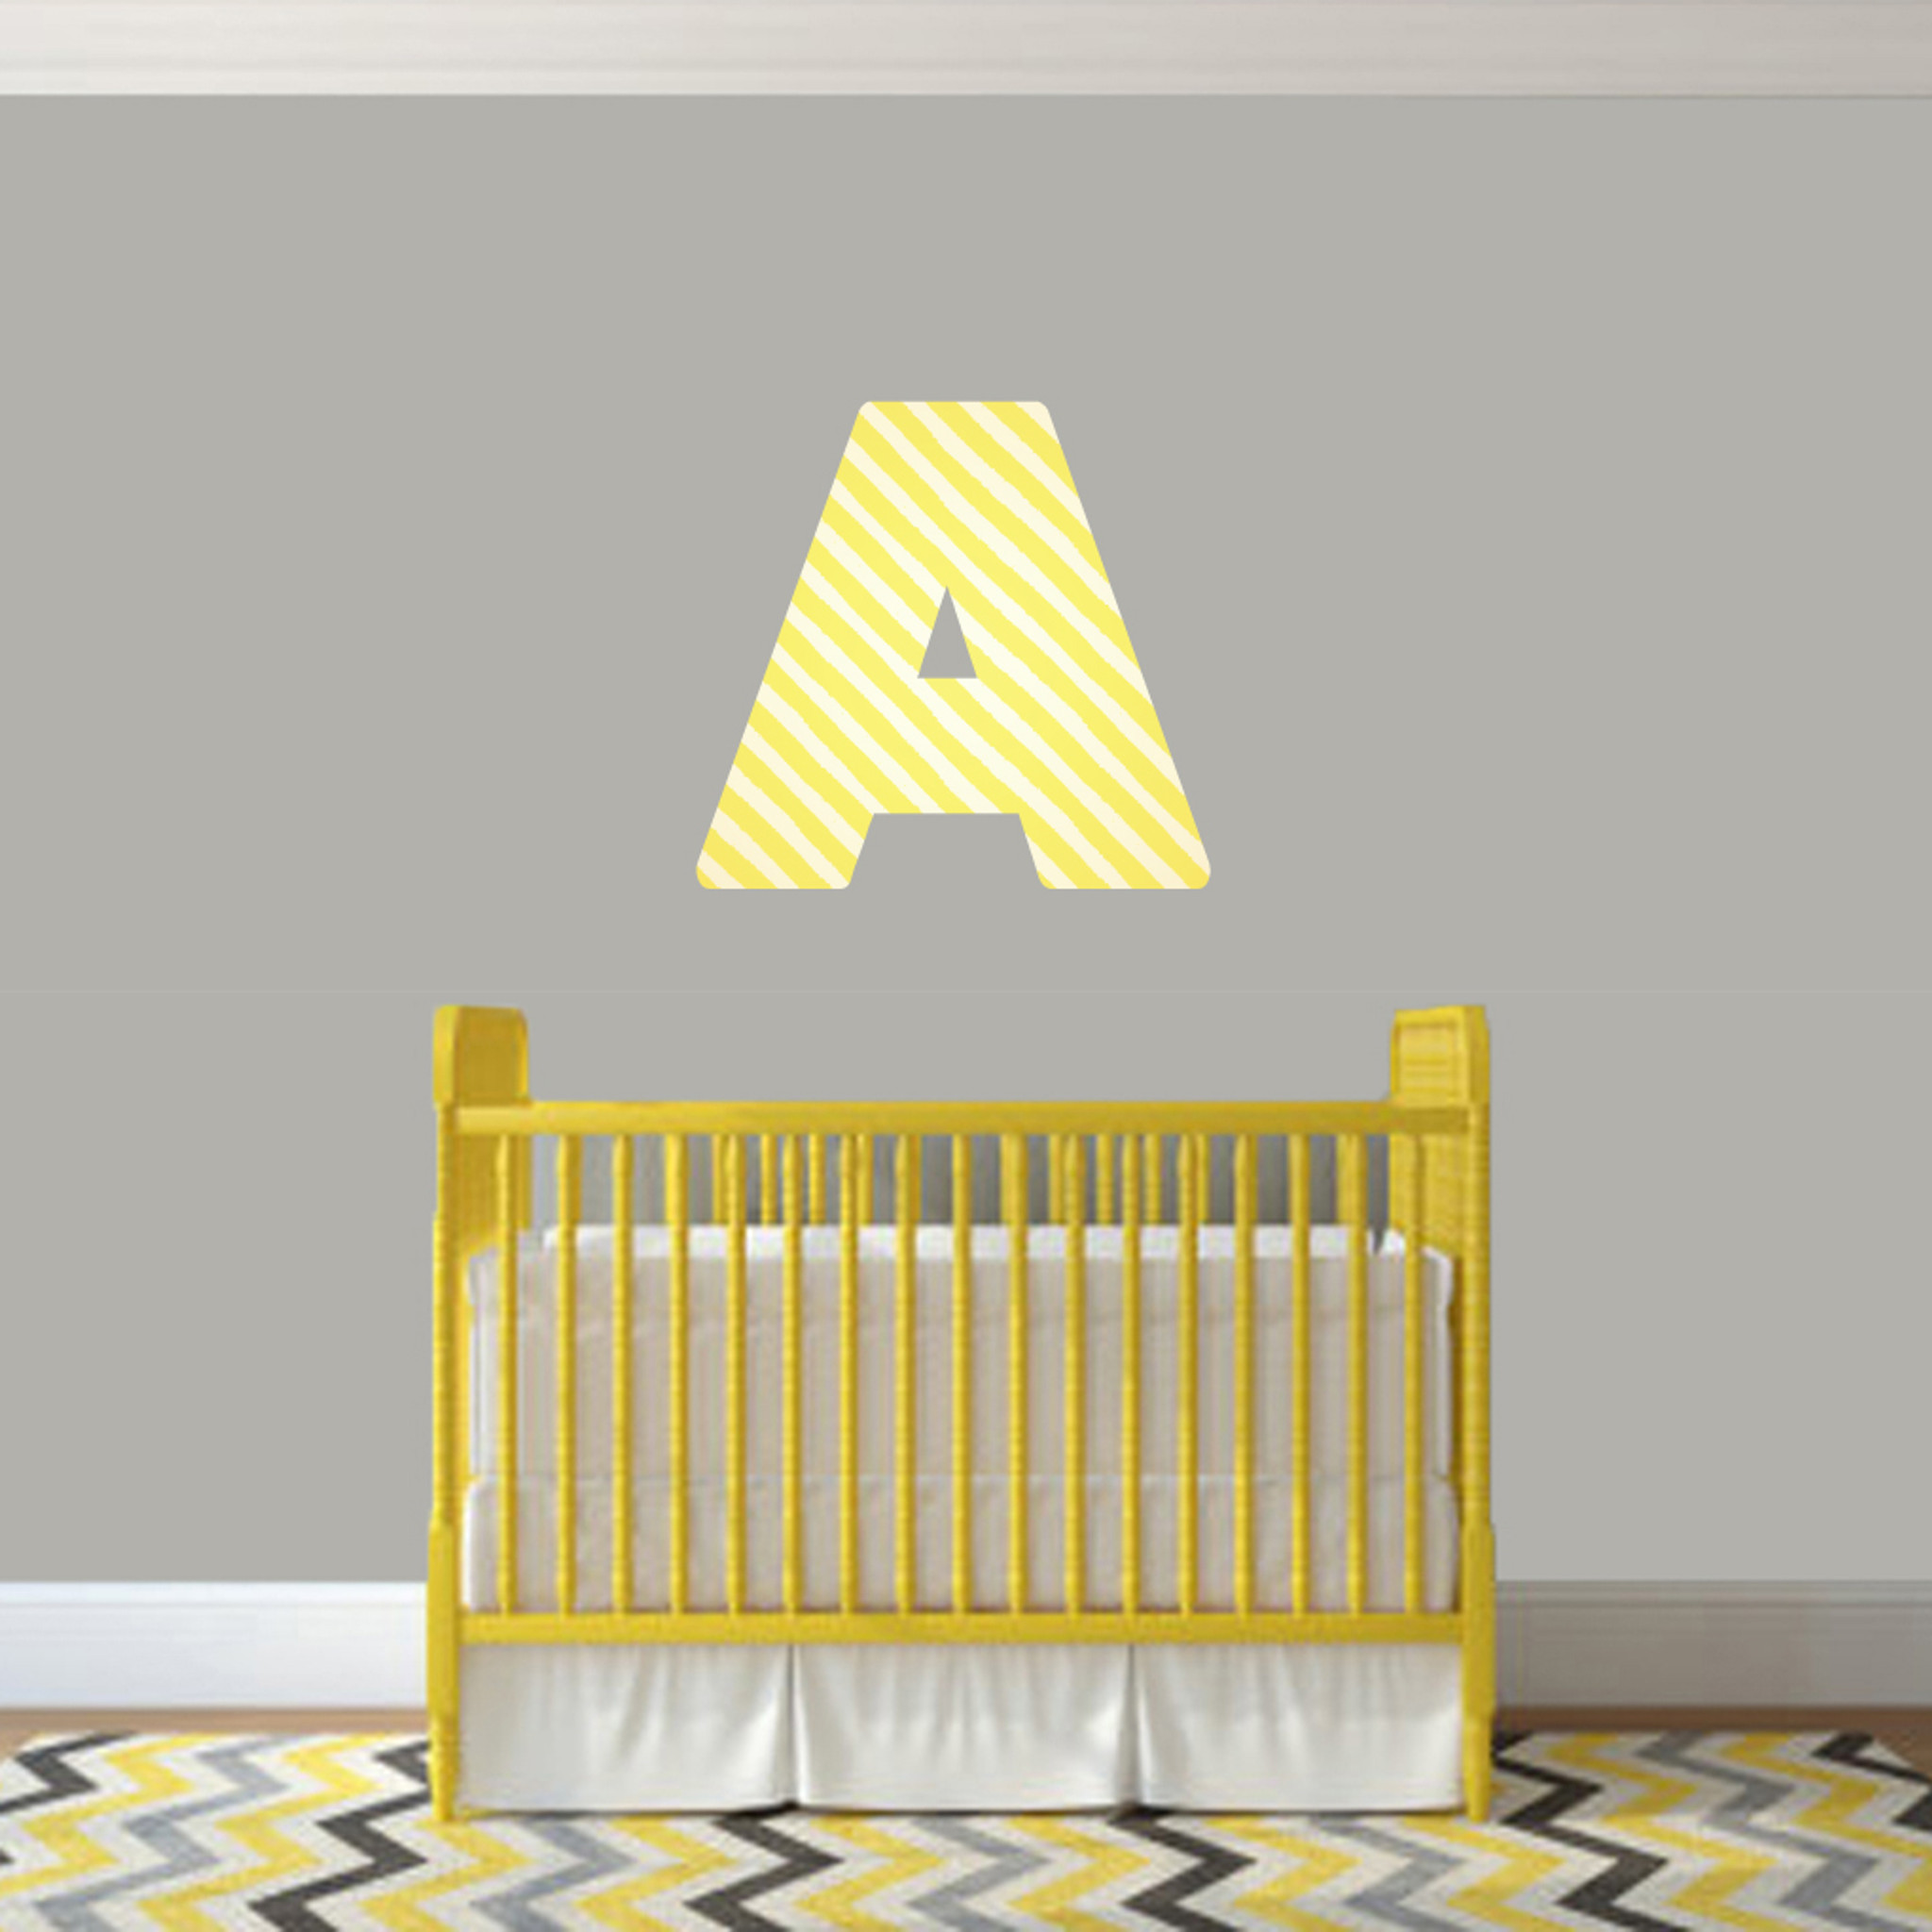 Printed Pattern Block Monogram Wall Decals Home Décor Wall Decals